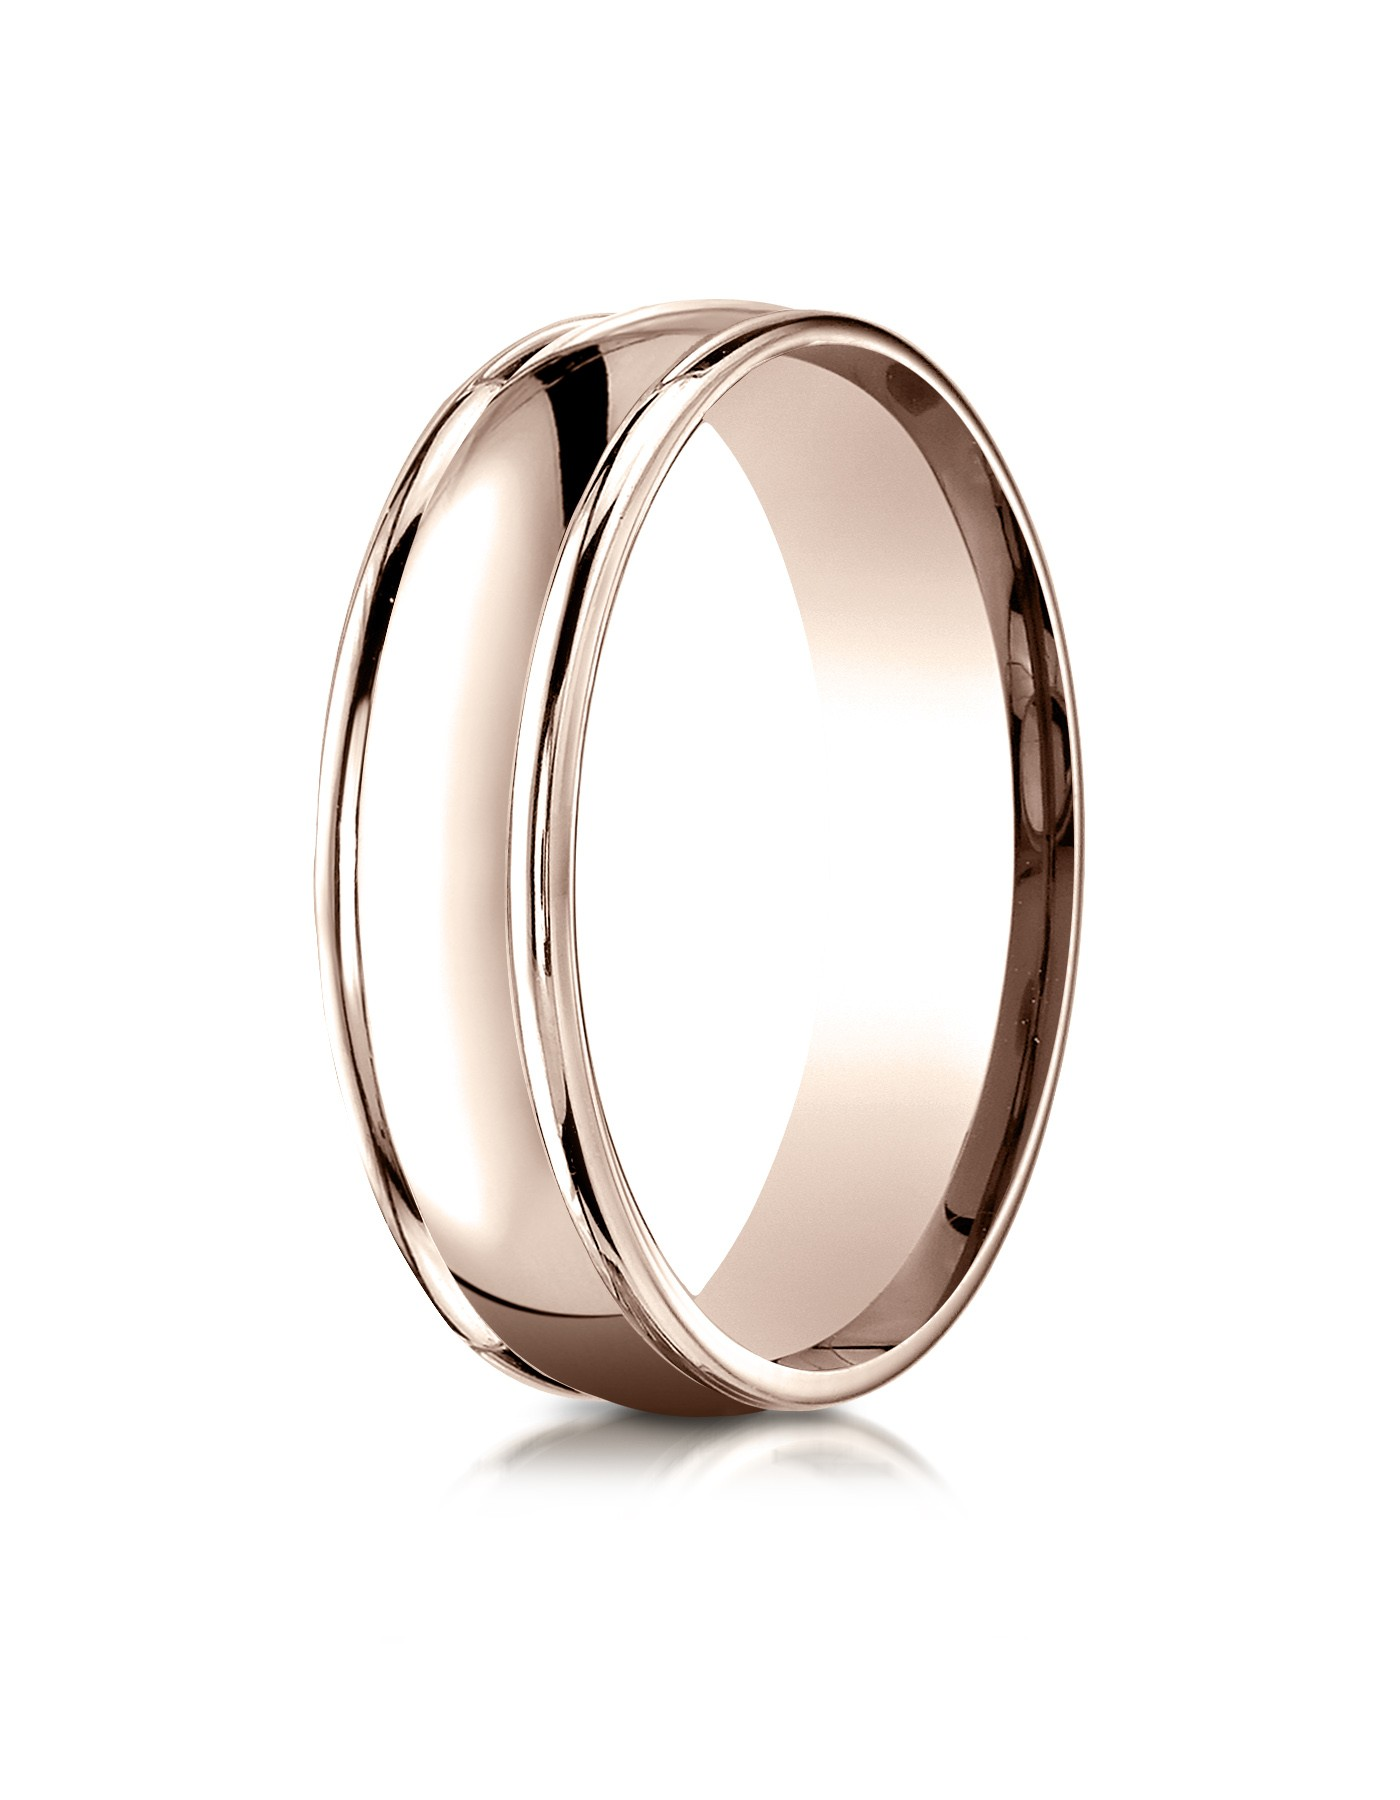 14k Rose Gold 6mm Comfort-fit High Polish Finish Round Edge Design Band